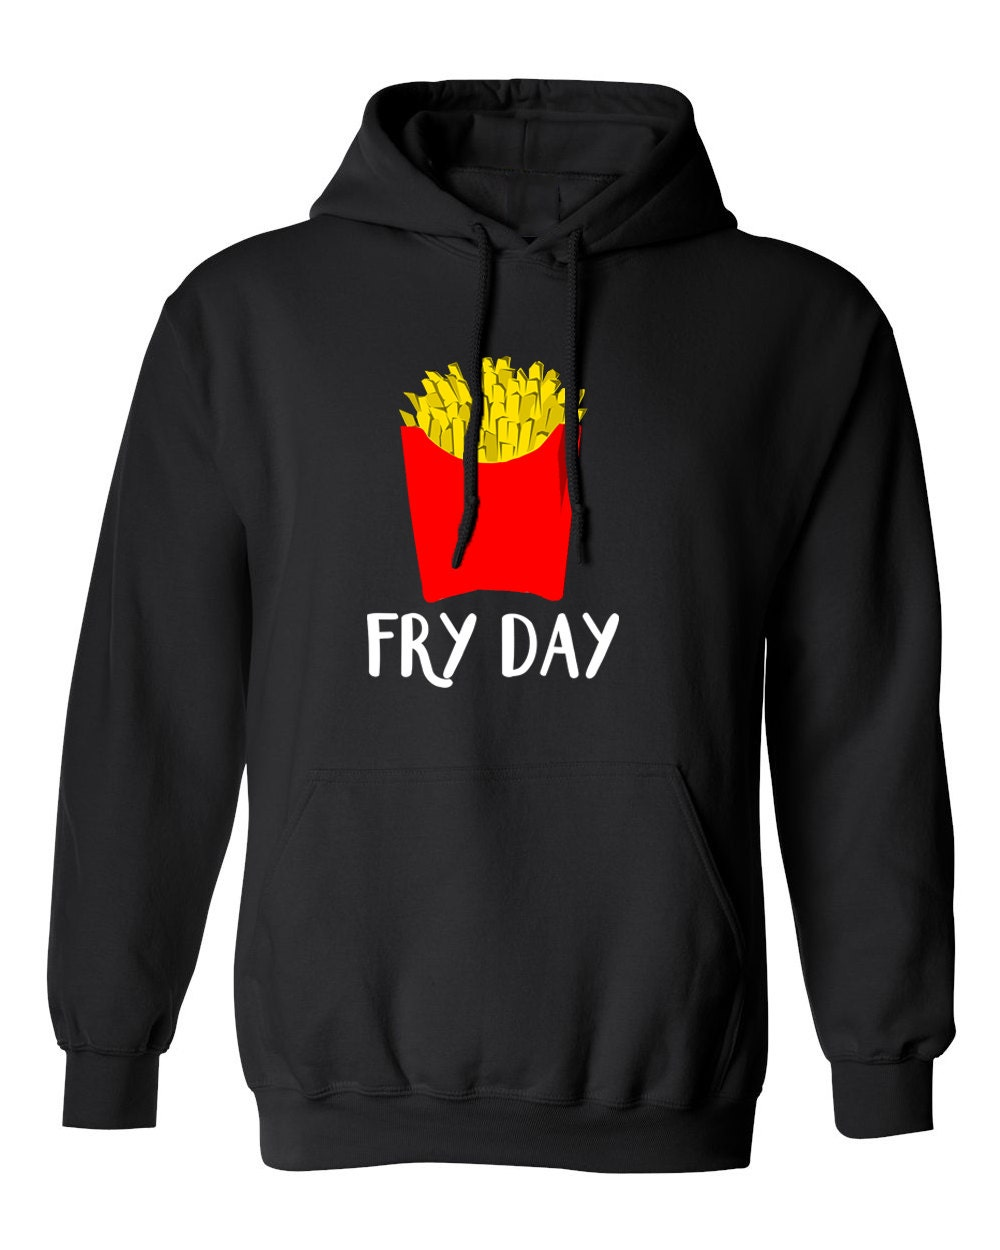 Fry Day Funny Cute Trendy French Fries Delicious Junk Food for Adult Unisex Sweater Crewneck Warm Crew-neck Women Clothing Men Clothing PqIR13e